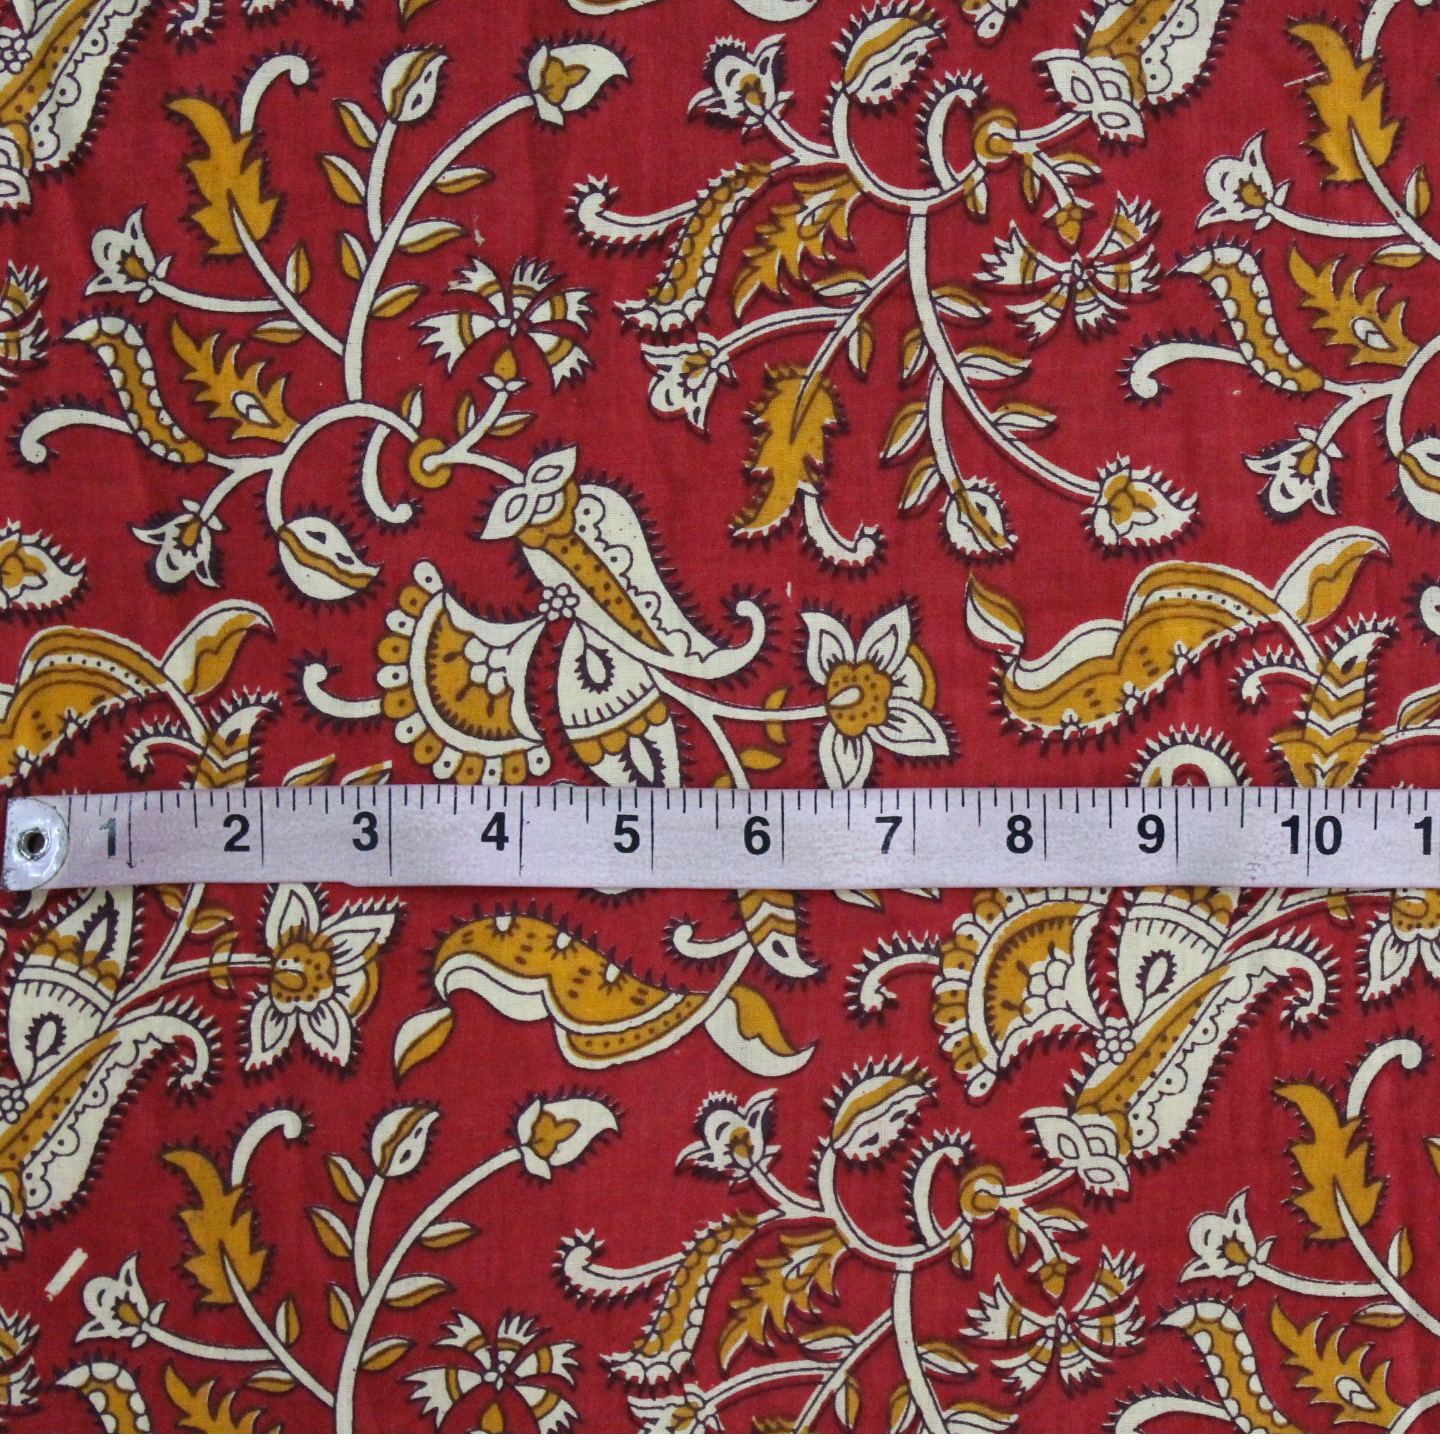 Red Floral Printed Fabric (Rs 150/Meter)